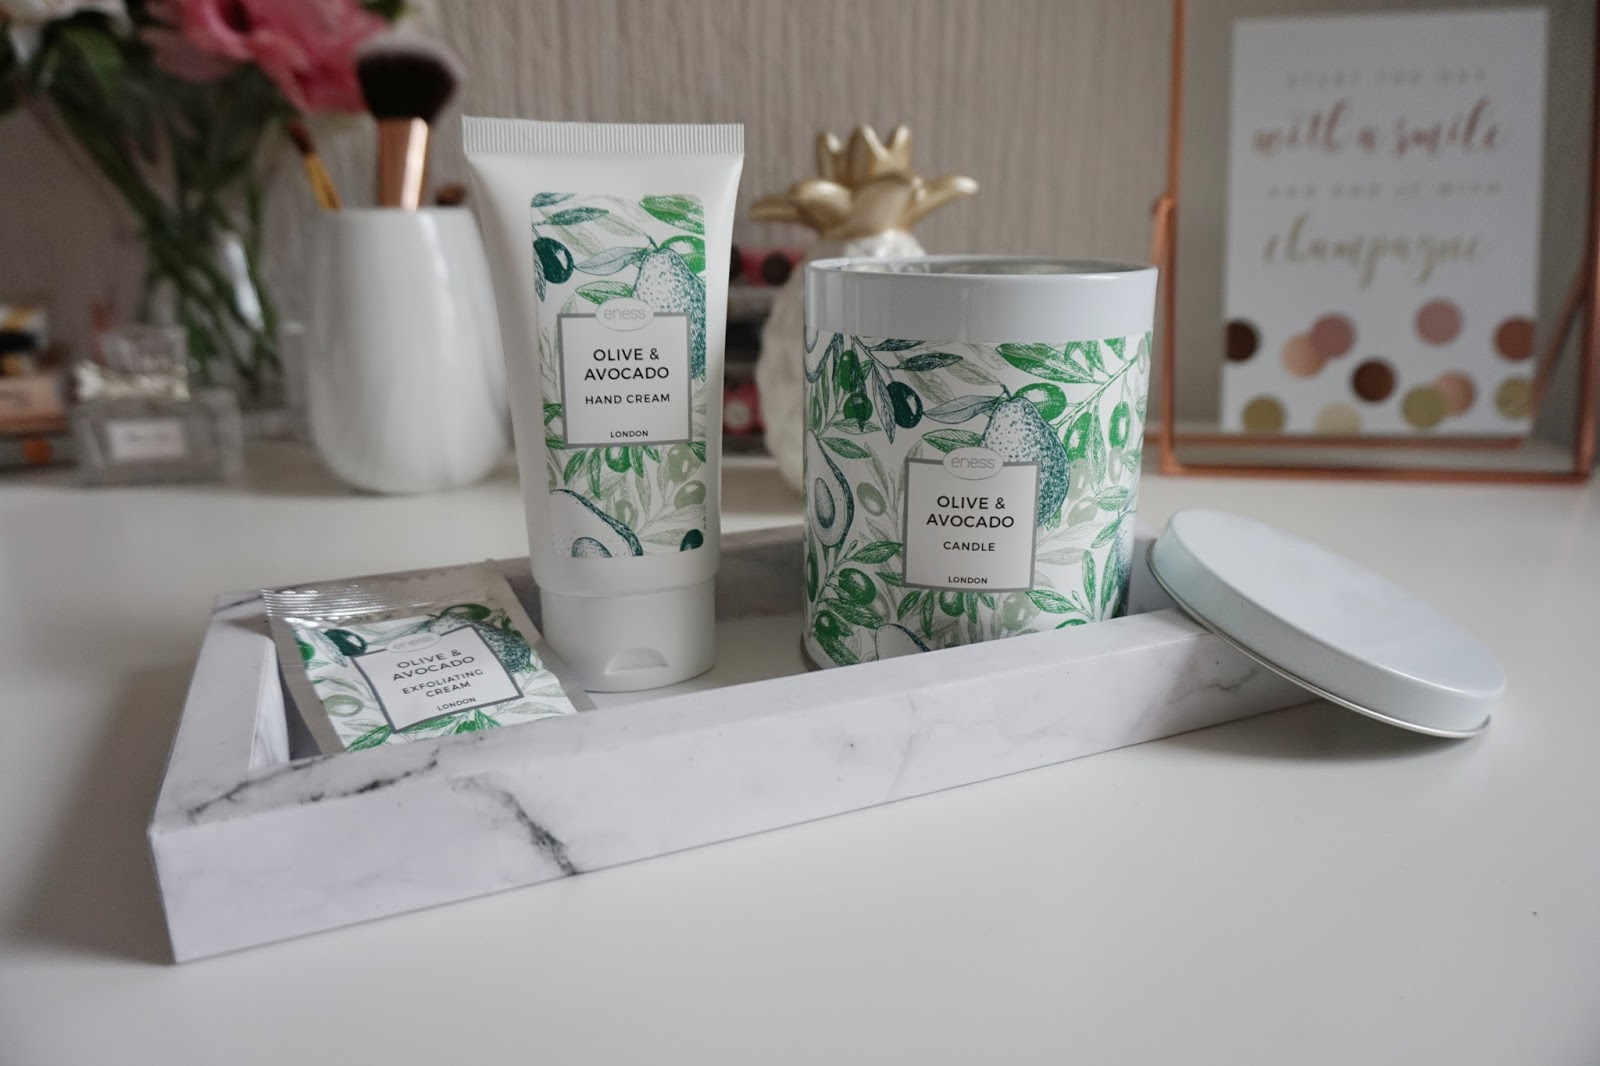 The Eness Cosmetics Olive and Avocado range wich includes hand cream, exfoliating cream and a scented candle